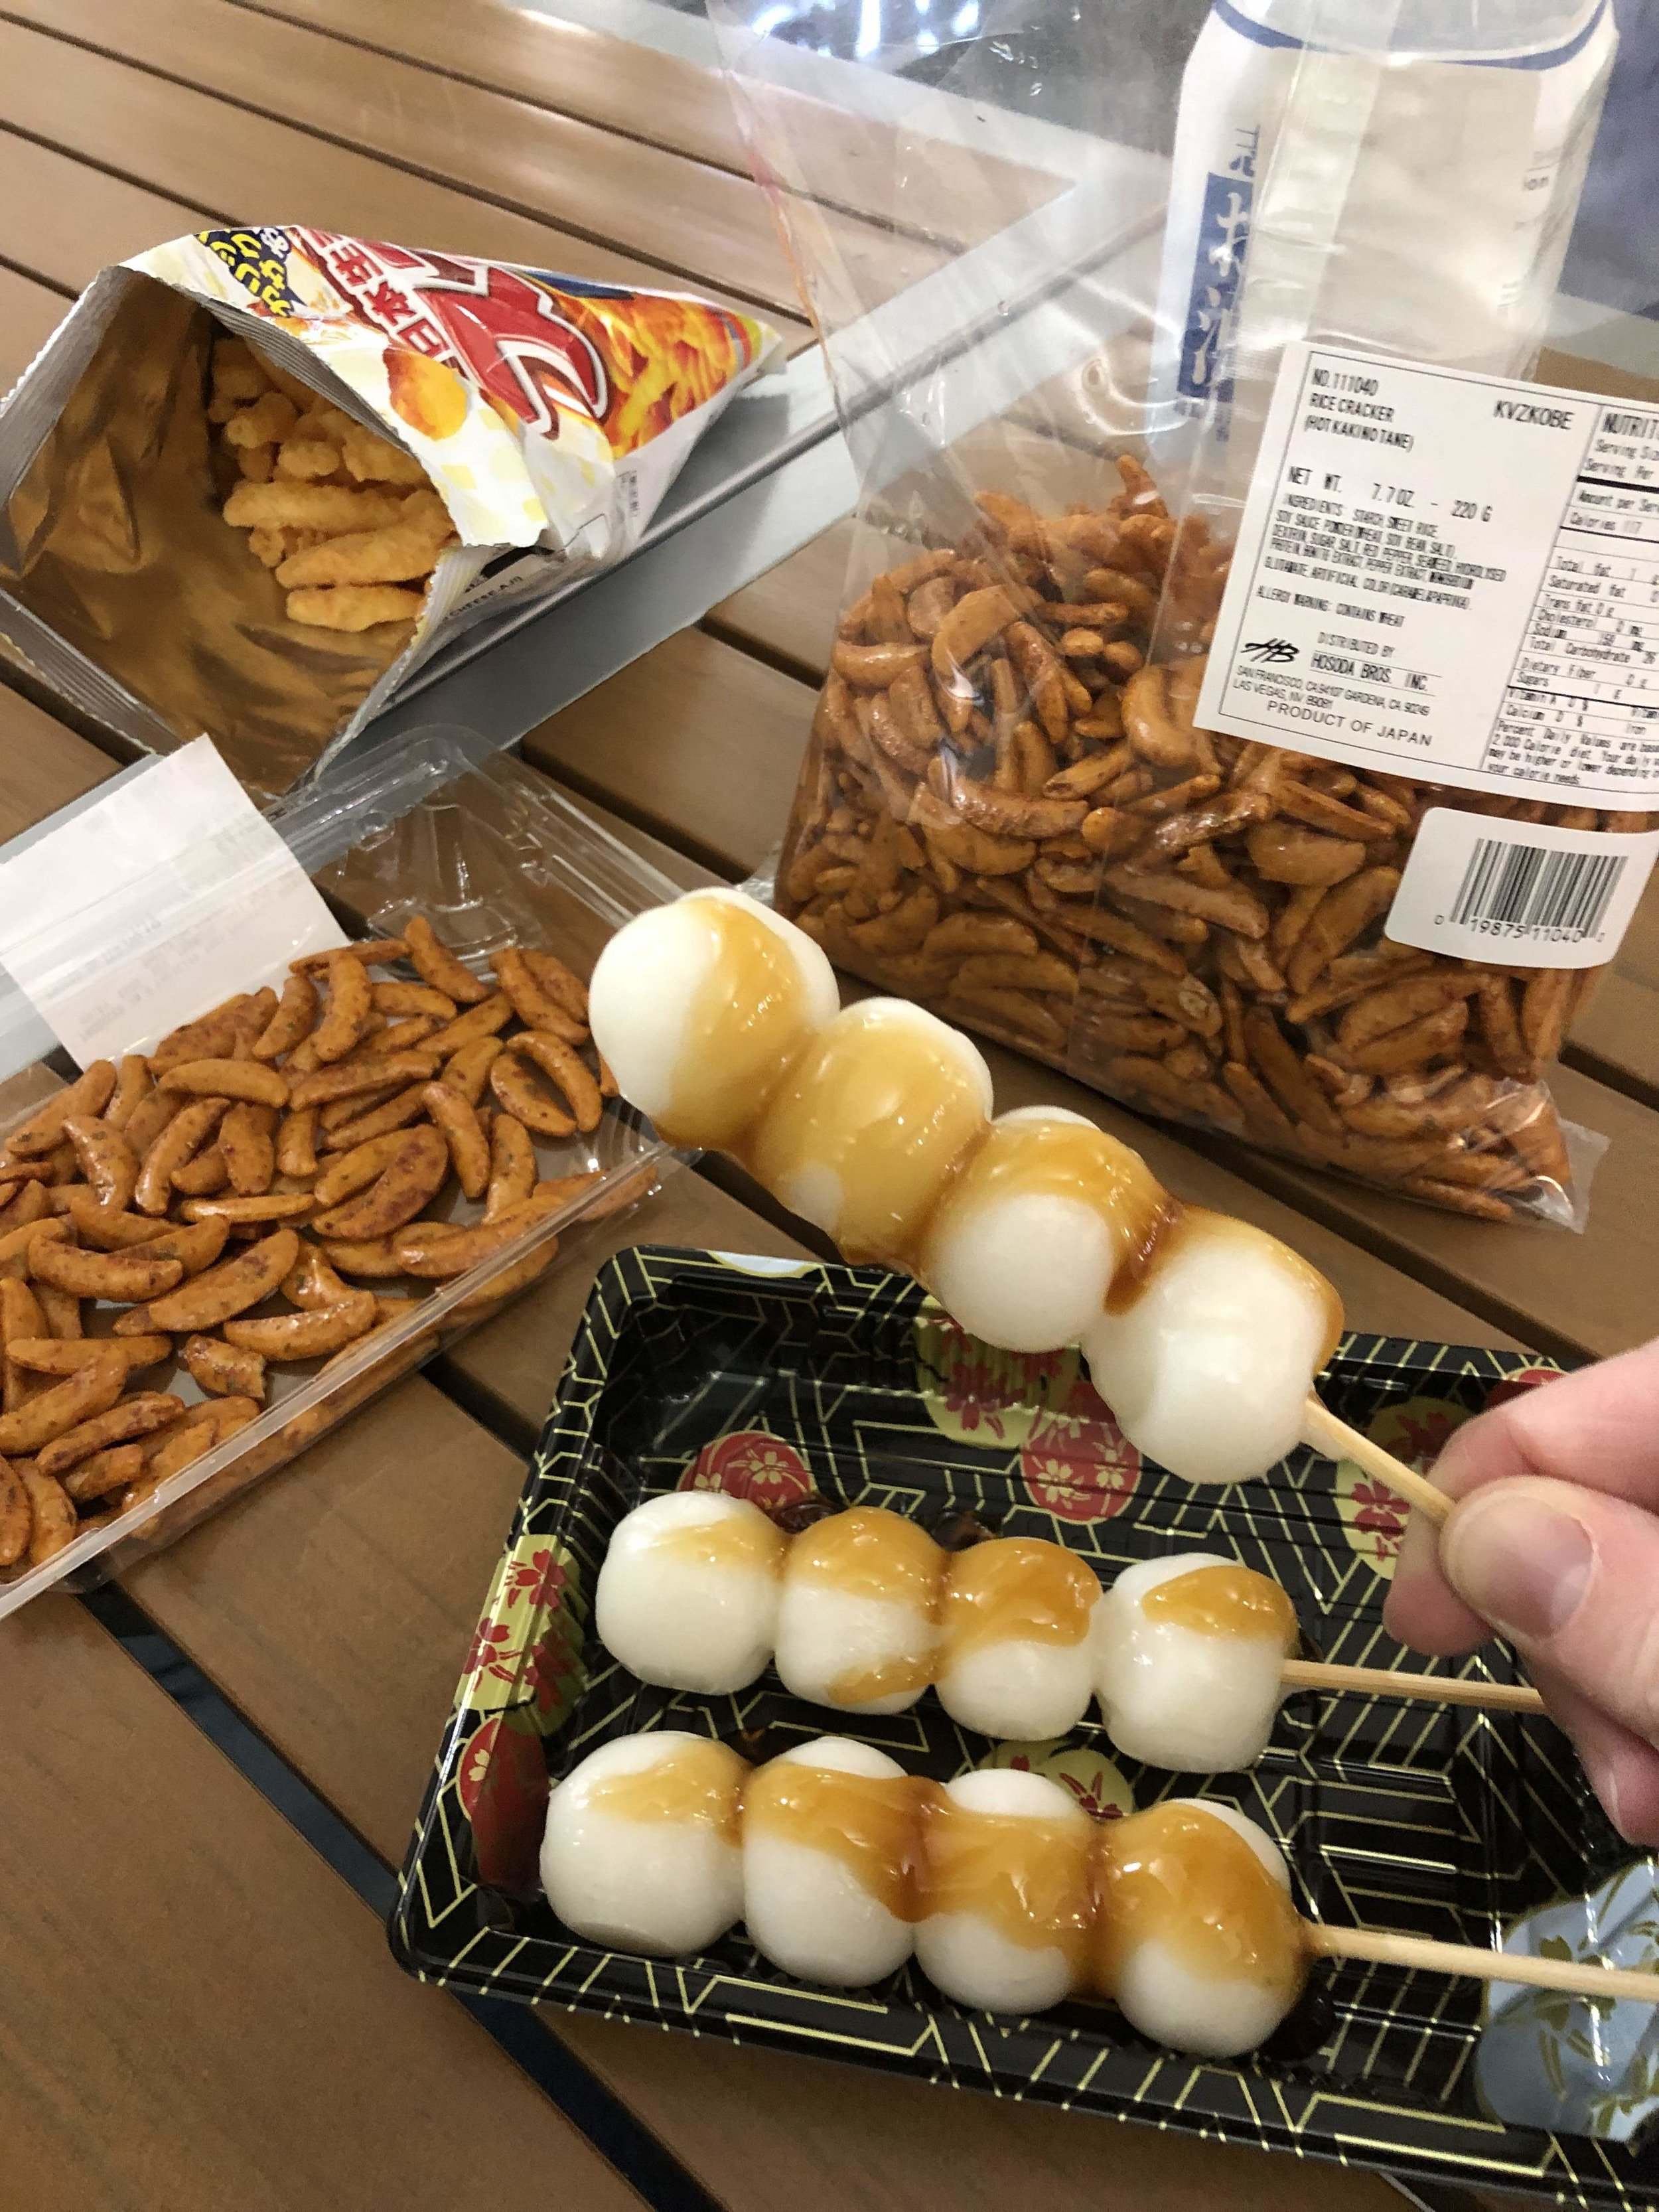 A few snacks we picked up while waiting for ramen.